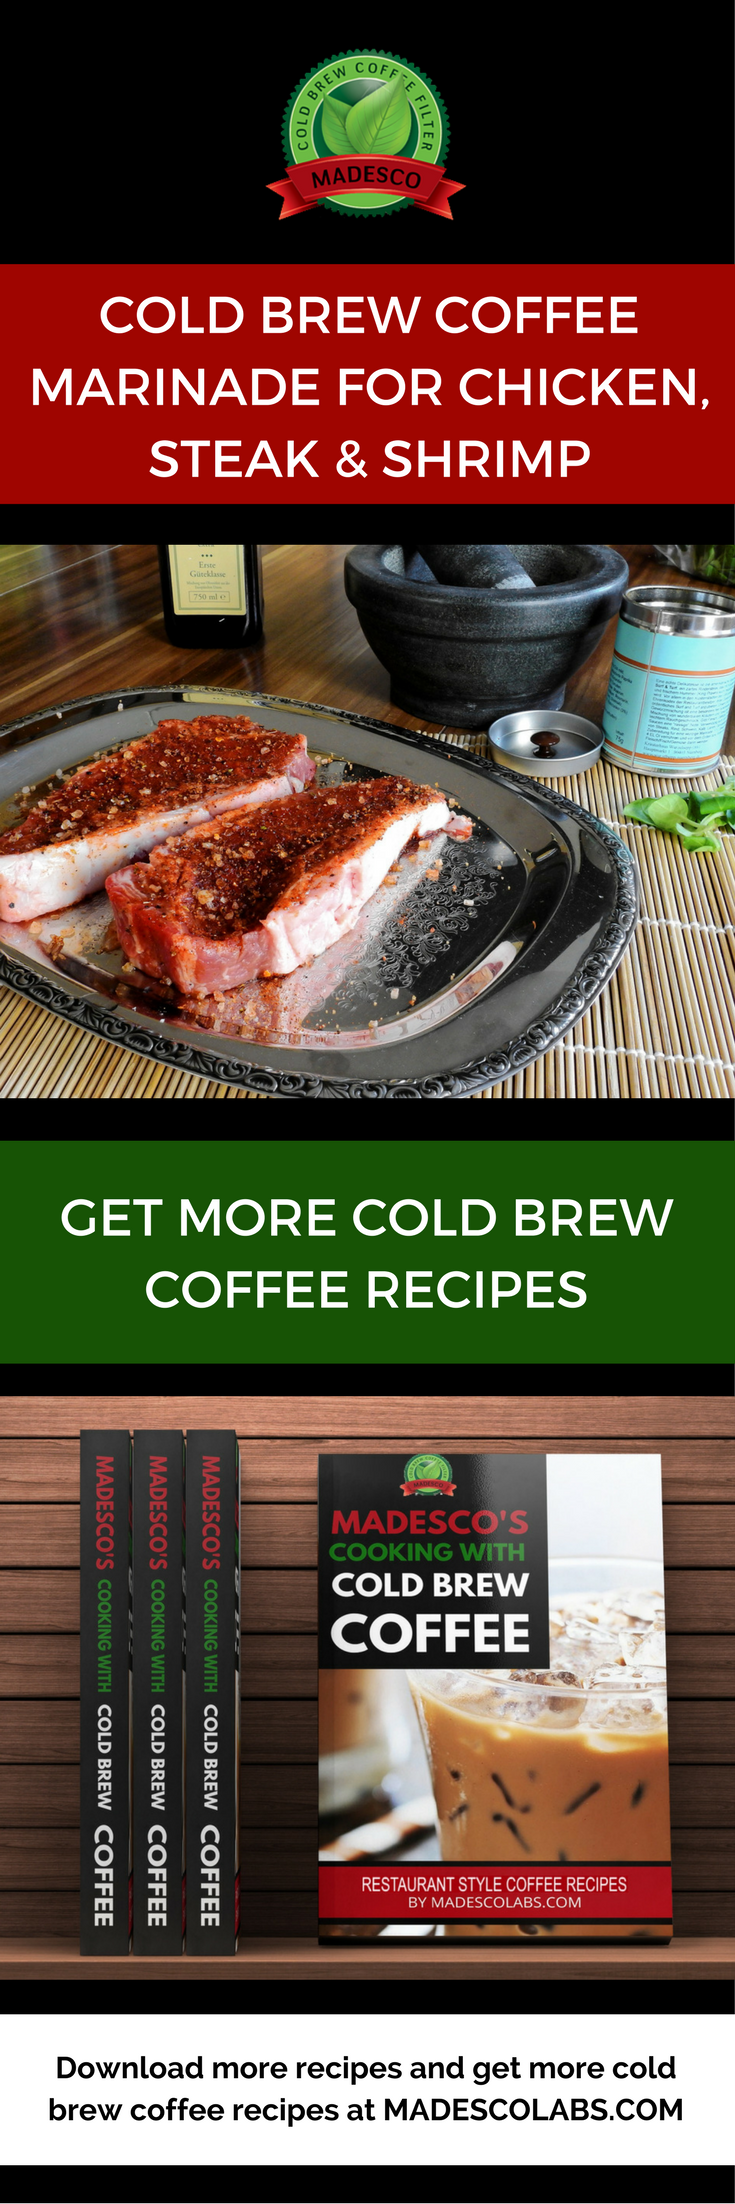 COLD BREW COFFEE MARINADE FOR CHICKEN, STEAK AND SHRIMP AT MADESCOLABS.COM